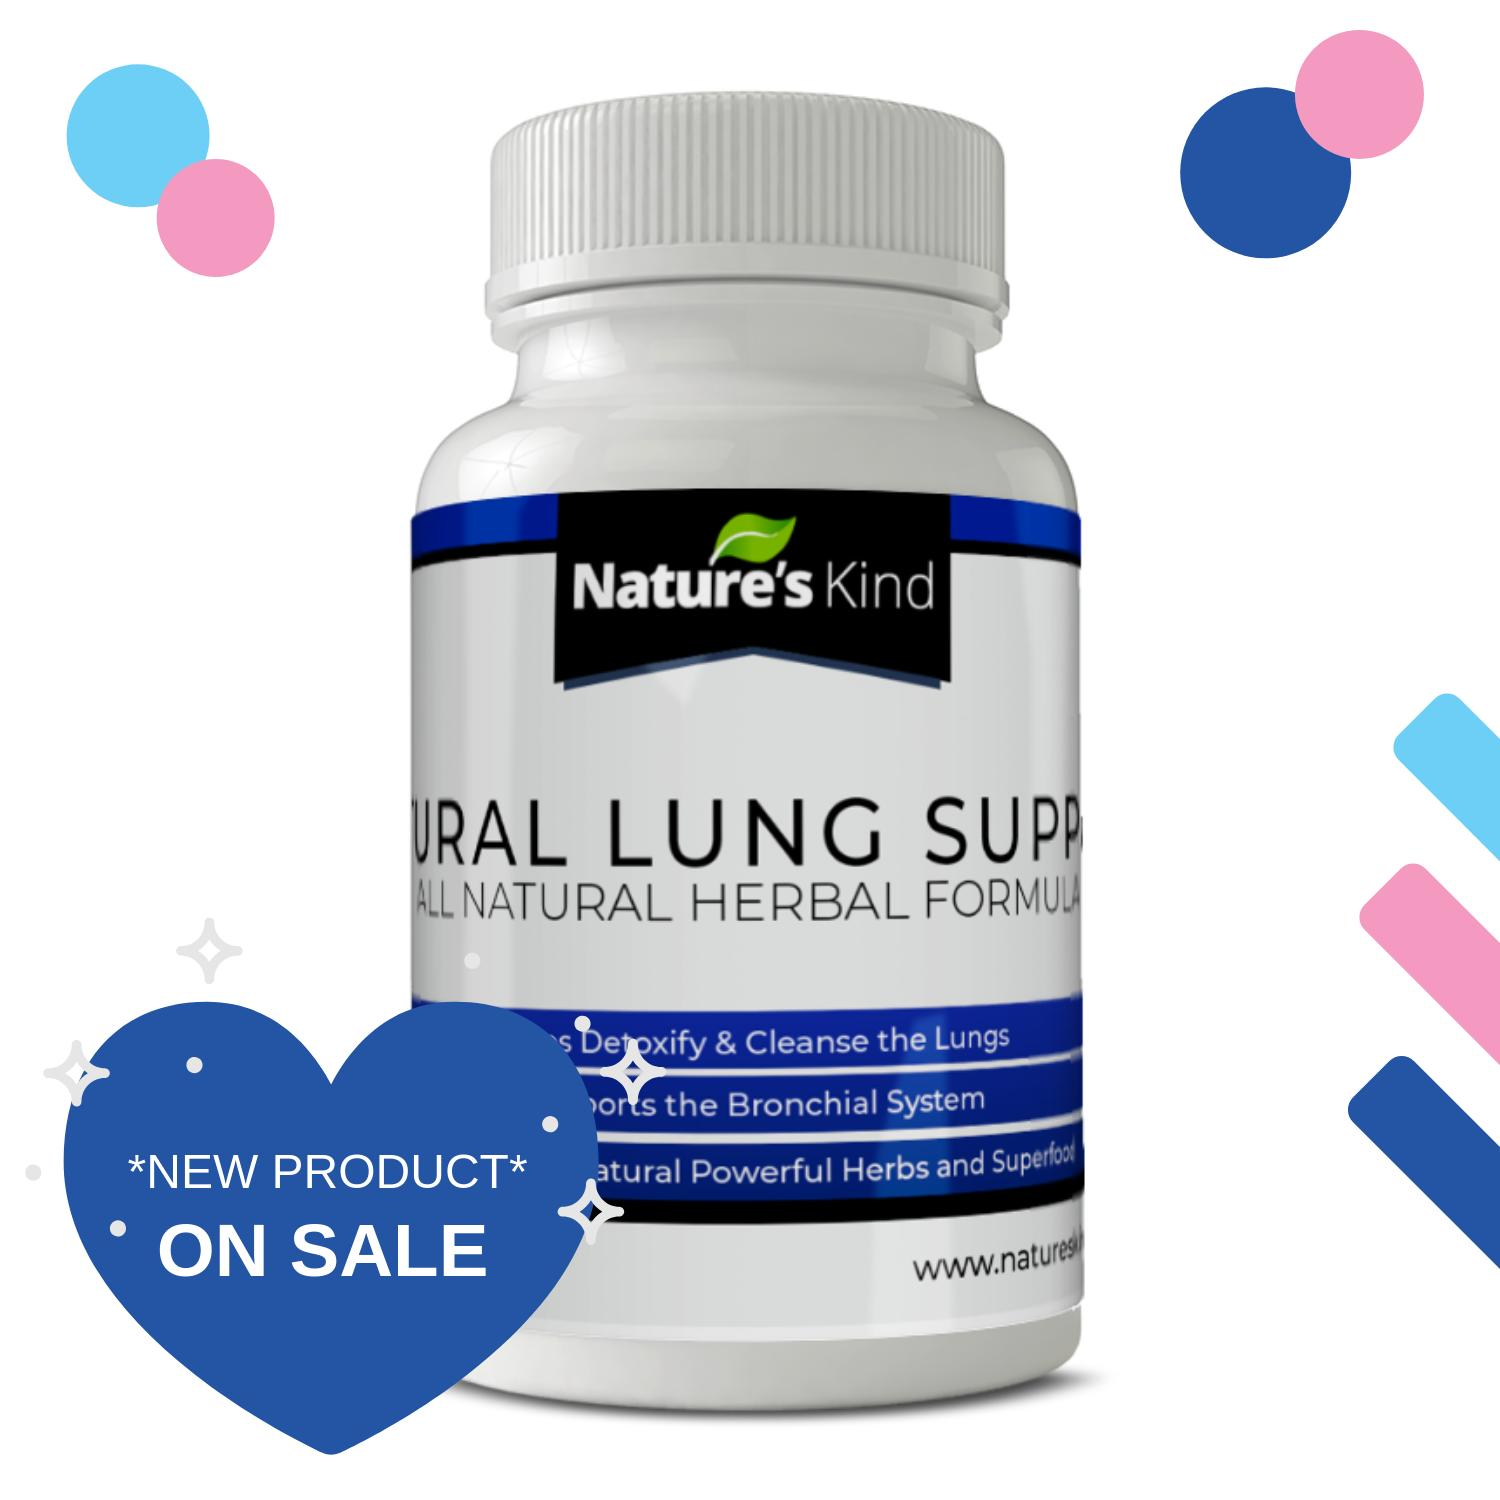 Natural Lung Support - with HERBS for Bronchial Wellness & Clearer Breathing